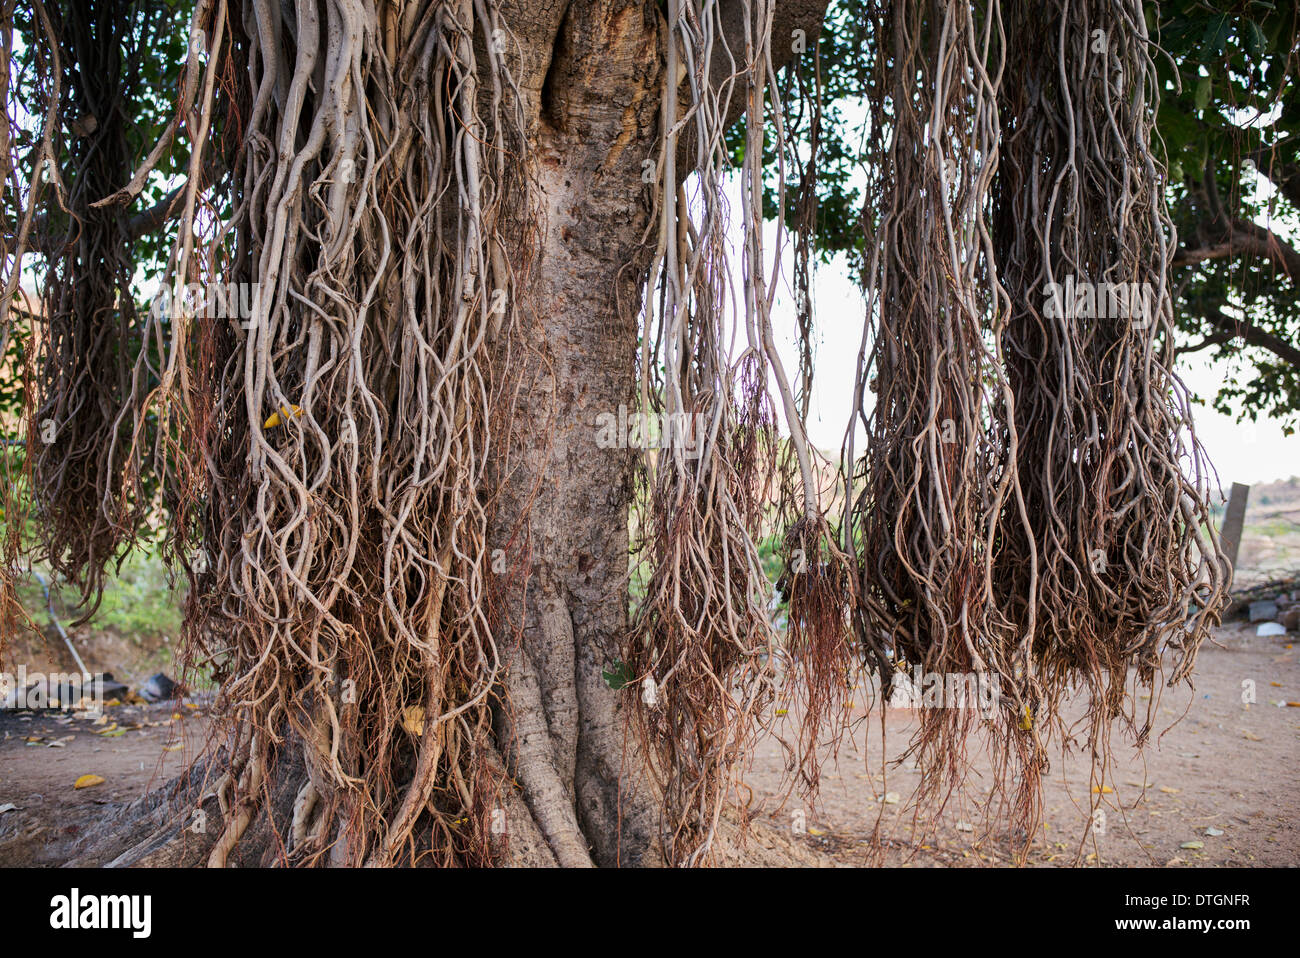 Wonderful Aerial Root Ficus Benjamina - ficus-benghalensis-indian-banyan-tree-with-aerial-prop-roots-india-DTGNFR  Picture_66884.jpg